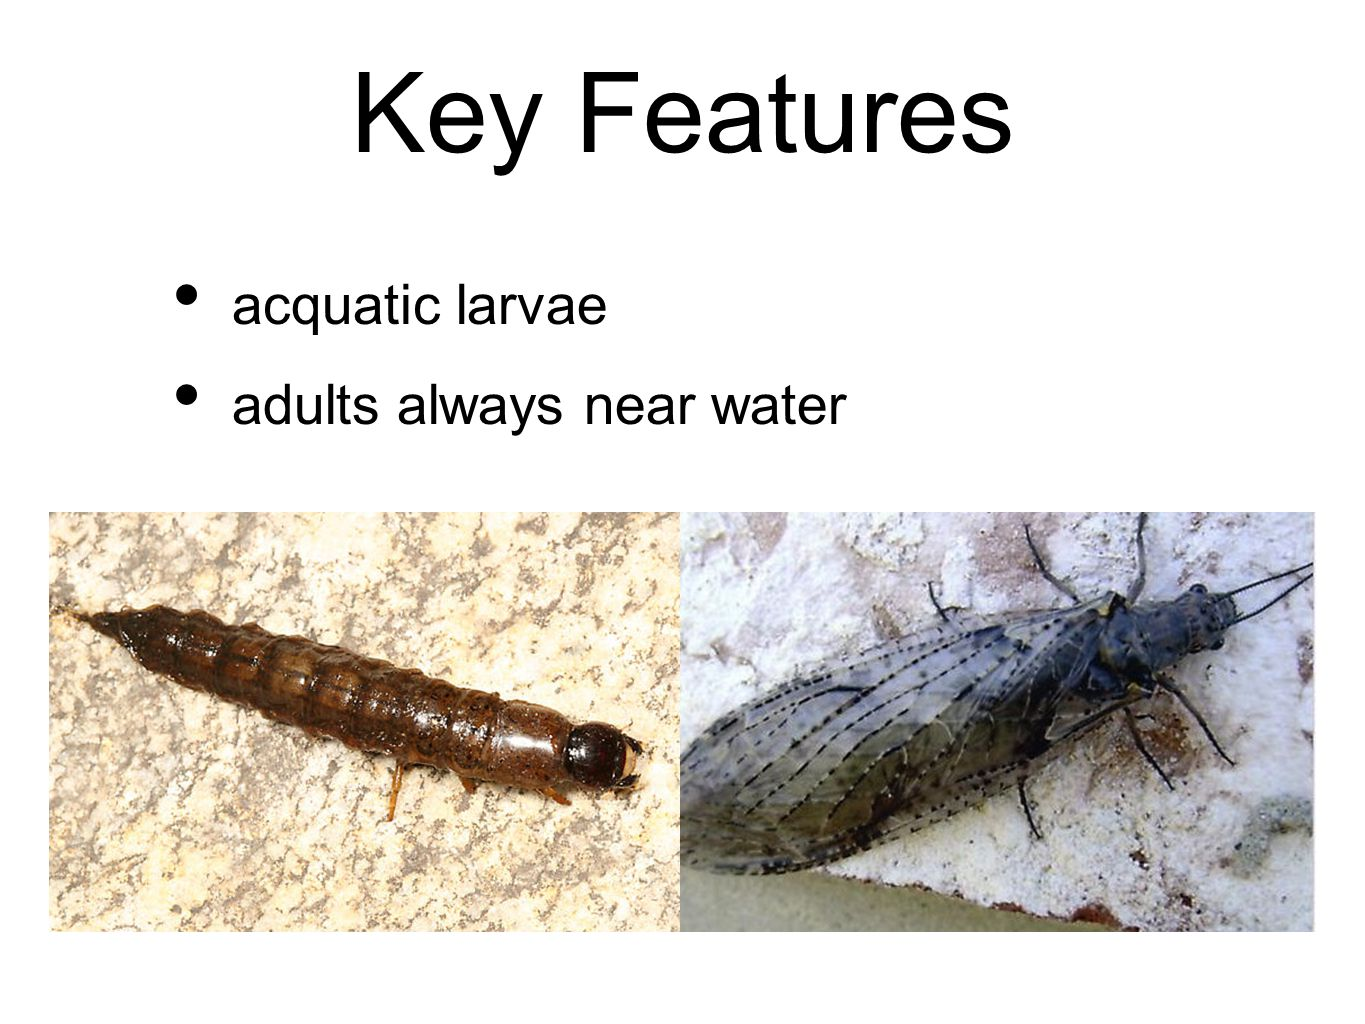 Key Features acquatic larvae adults always near water